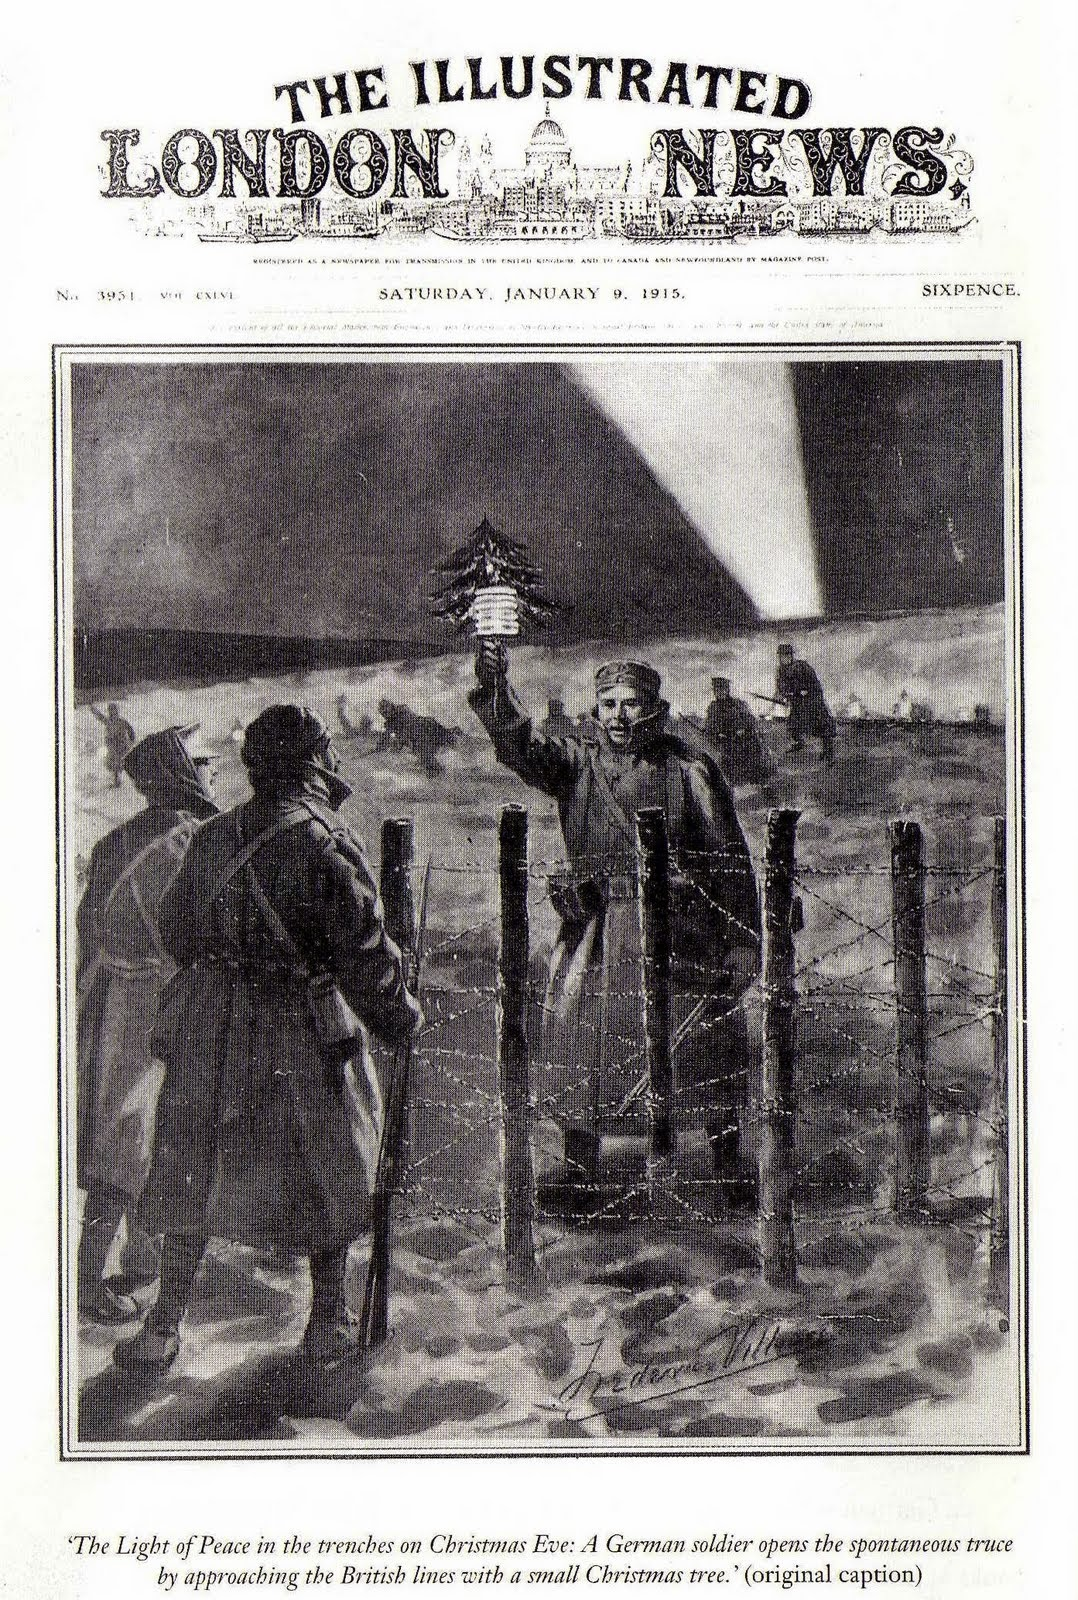 the christmas truce The christmas truce took place christmas 1914 amidst world war i during this time, both the german and british soldiers stopped fighting to have a peaceful christmas.